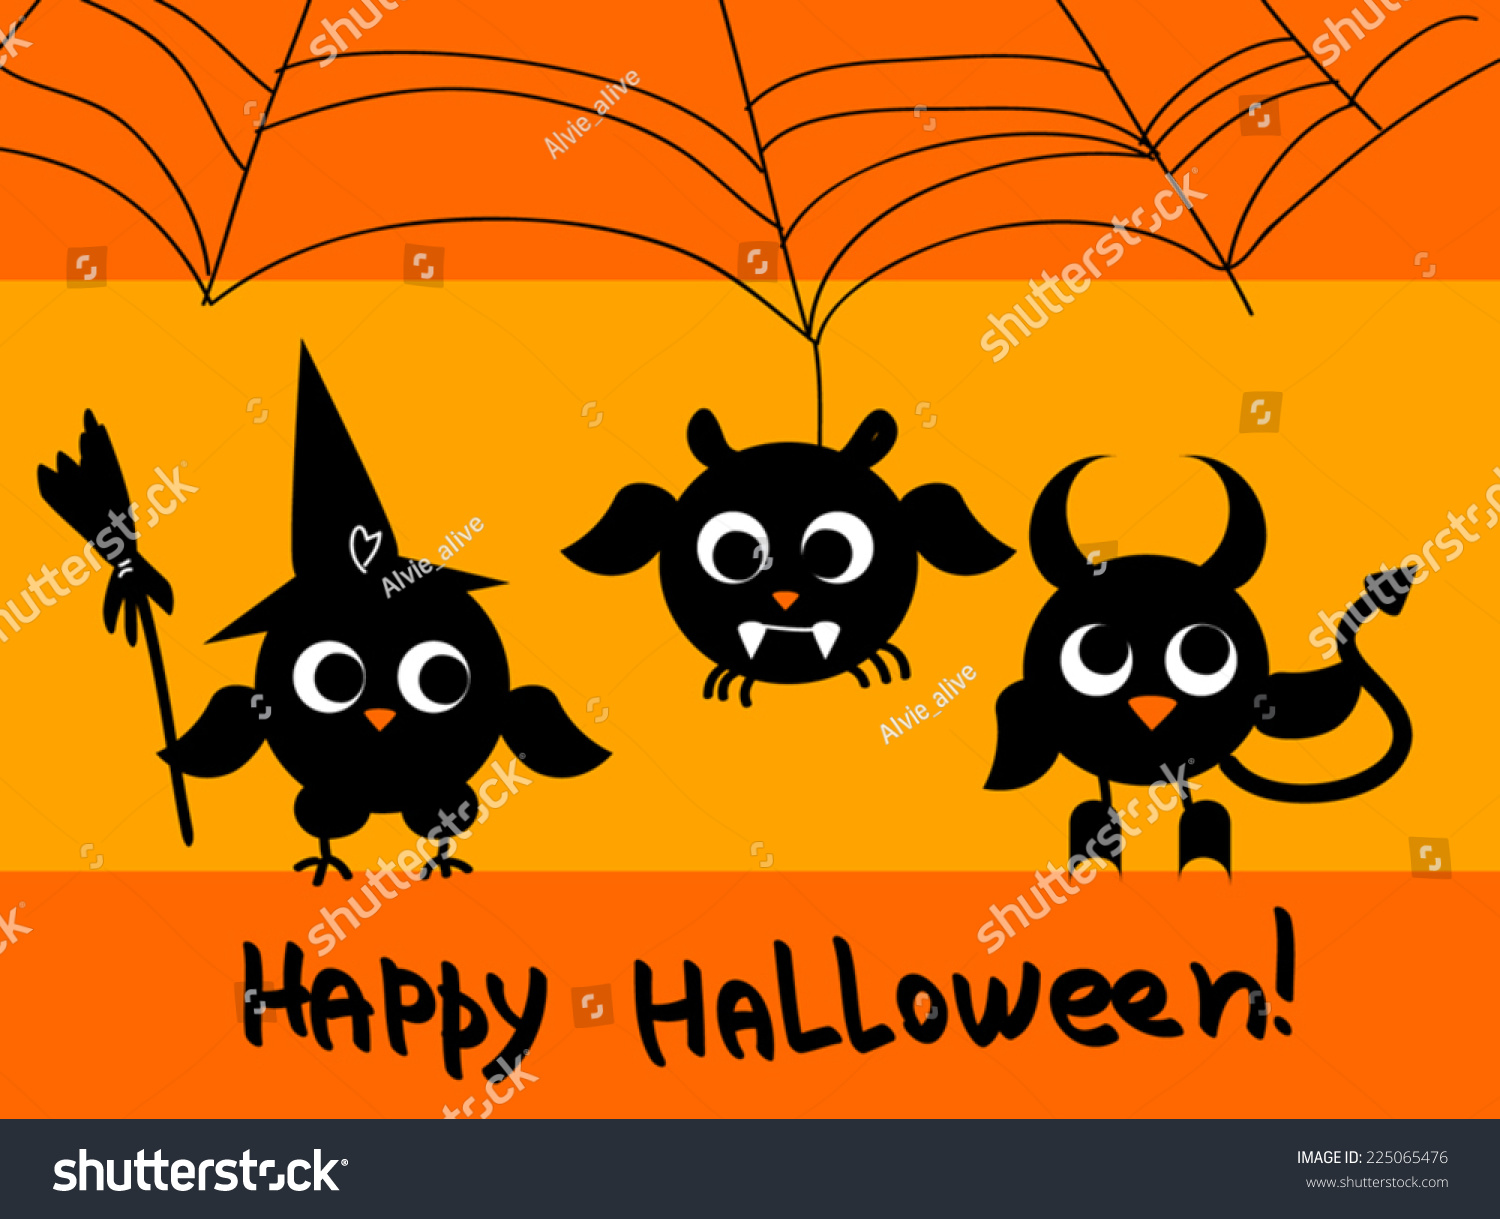 Cute halloween card black owls silhouettes stock vector 225065476 cute halloween card black owls silhouettes as witch devil kristyandbryce Images